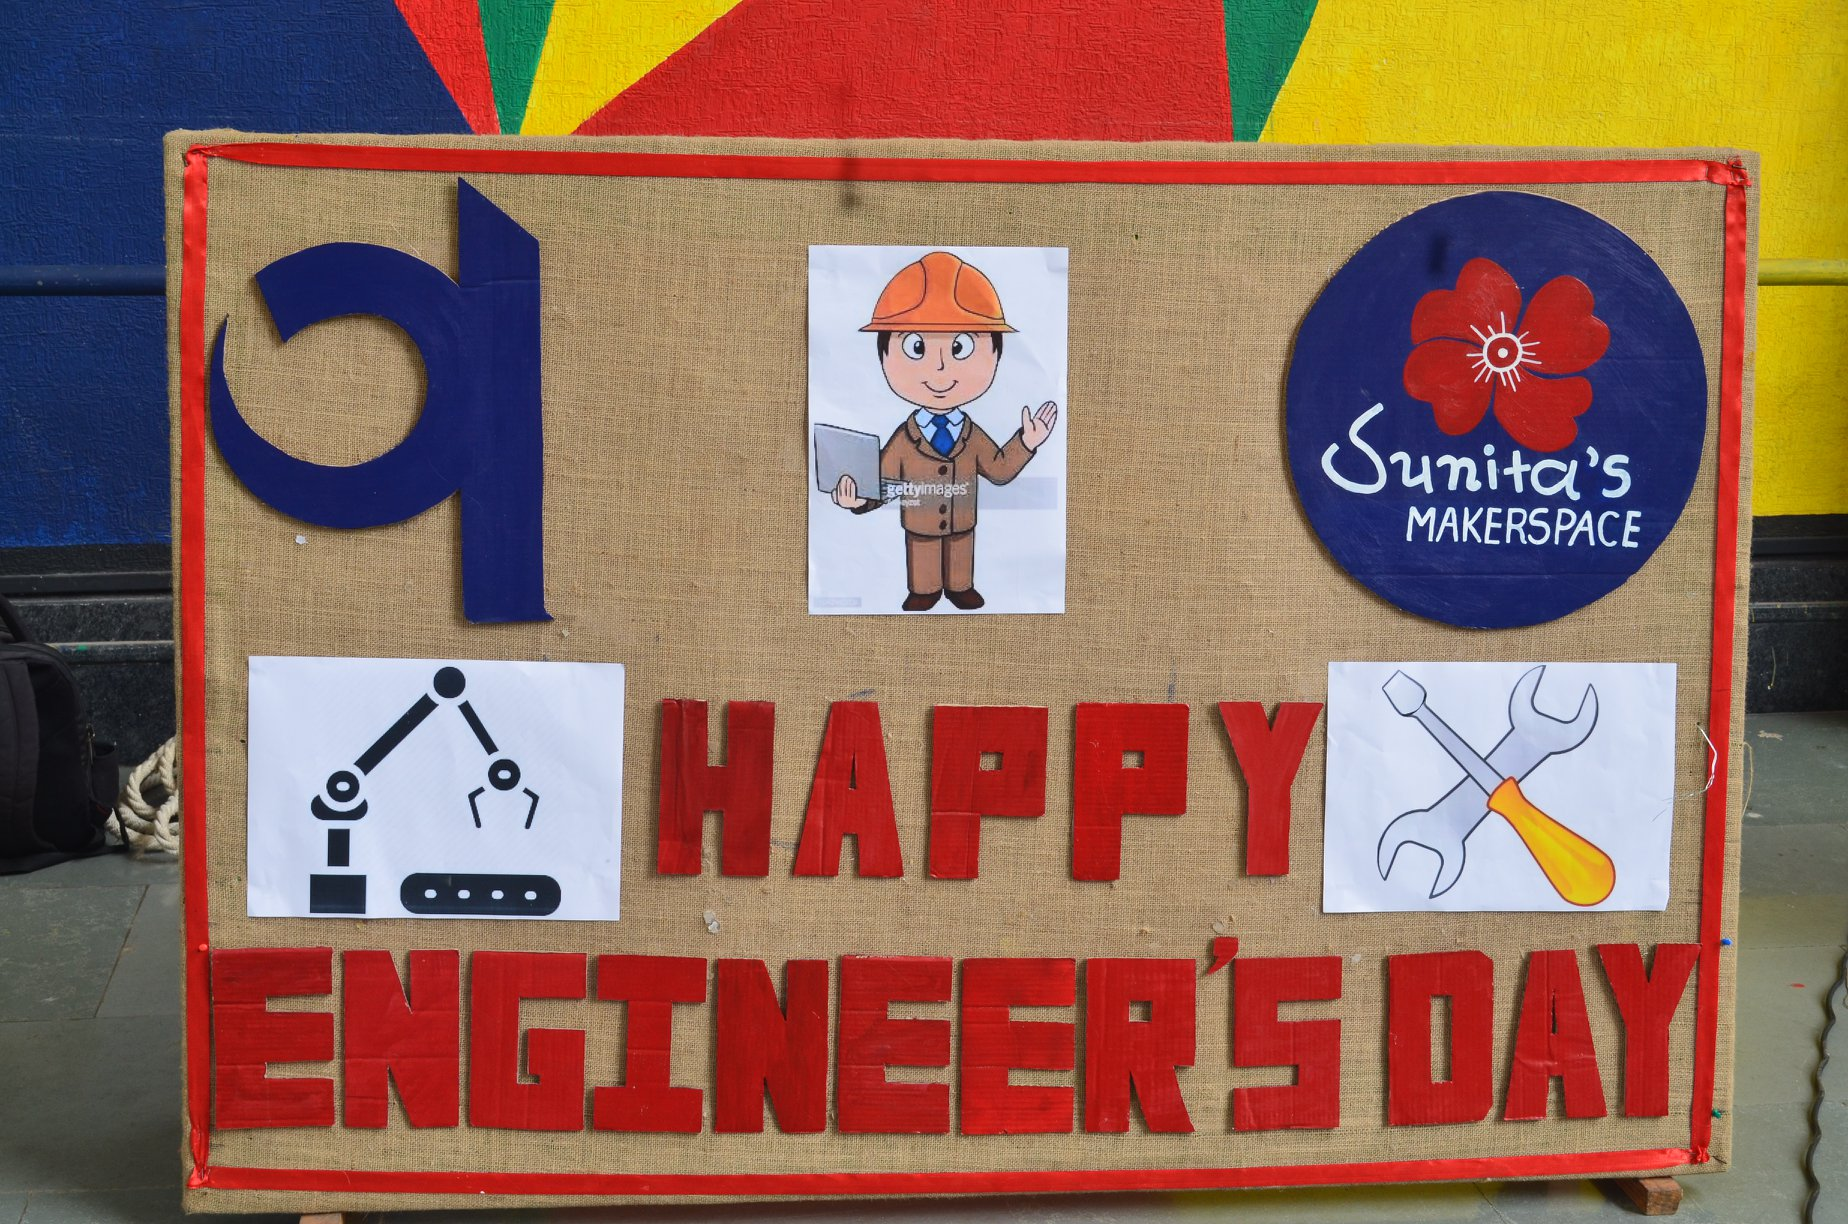 Engineers Day Celebration